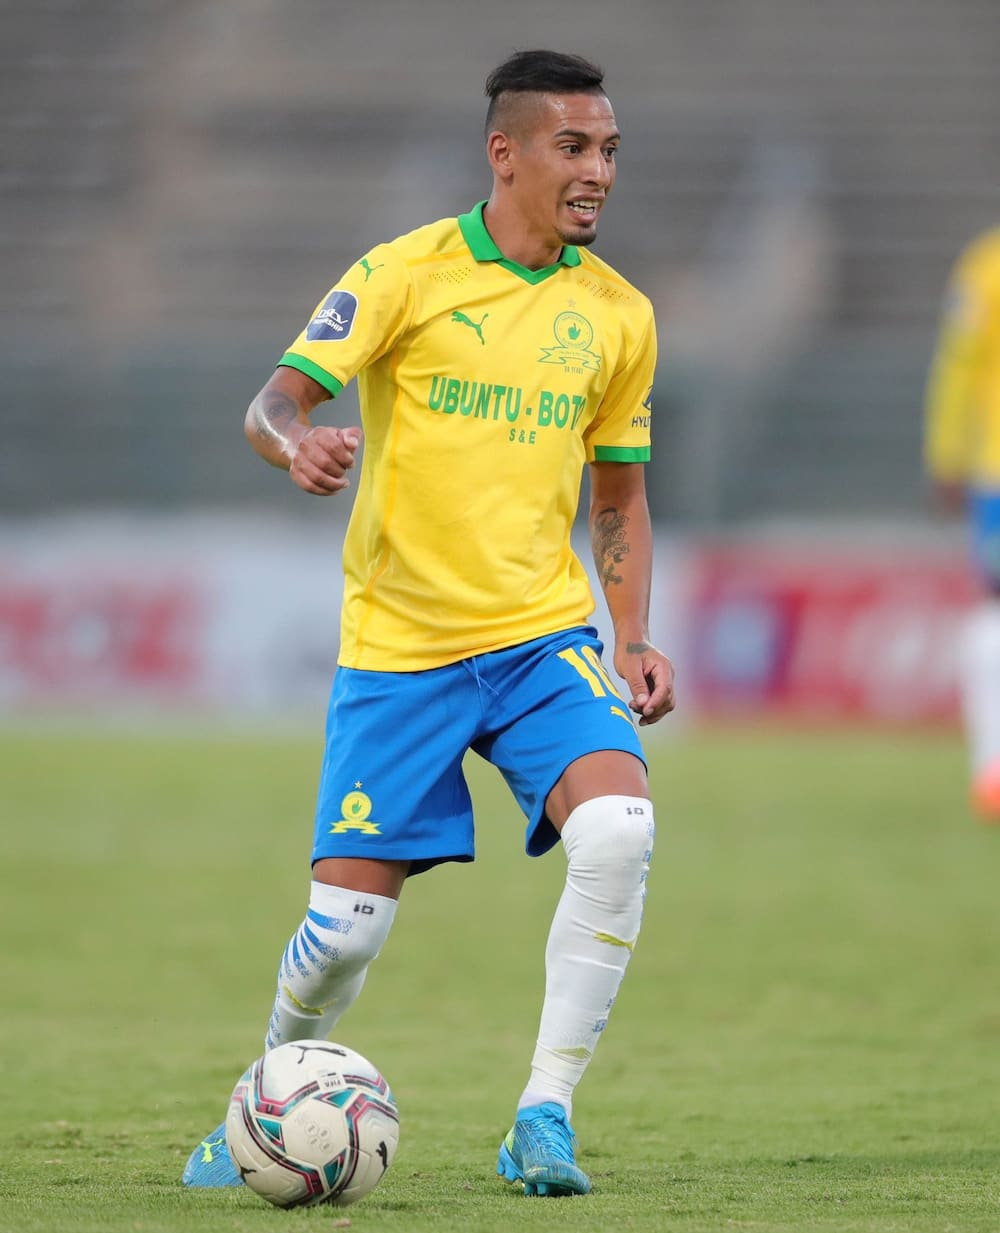 Highest paid soccer player in South Africa